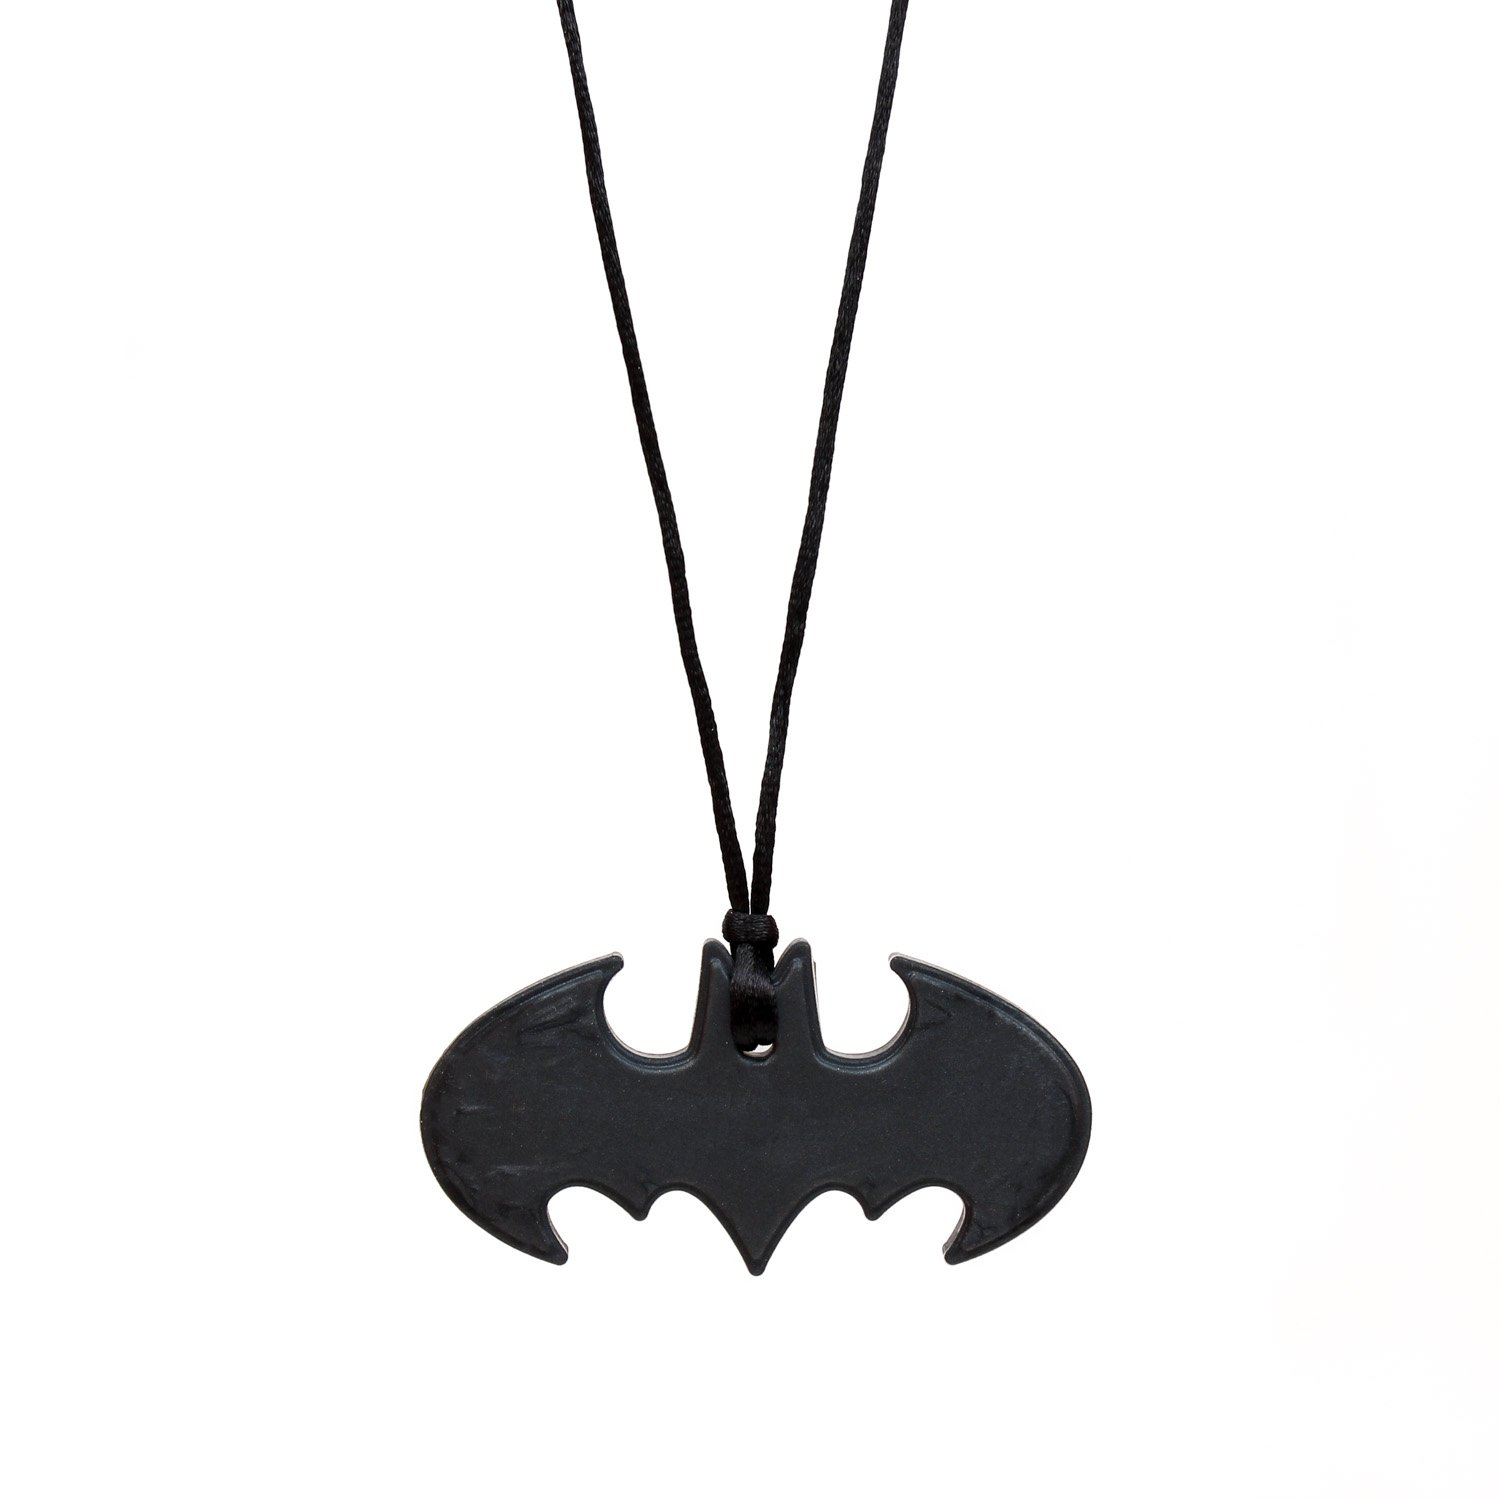 Bumkins Silicone Baby Teething Pendant Necklace for Mom, DC Comics, Batman Onyx